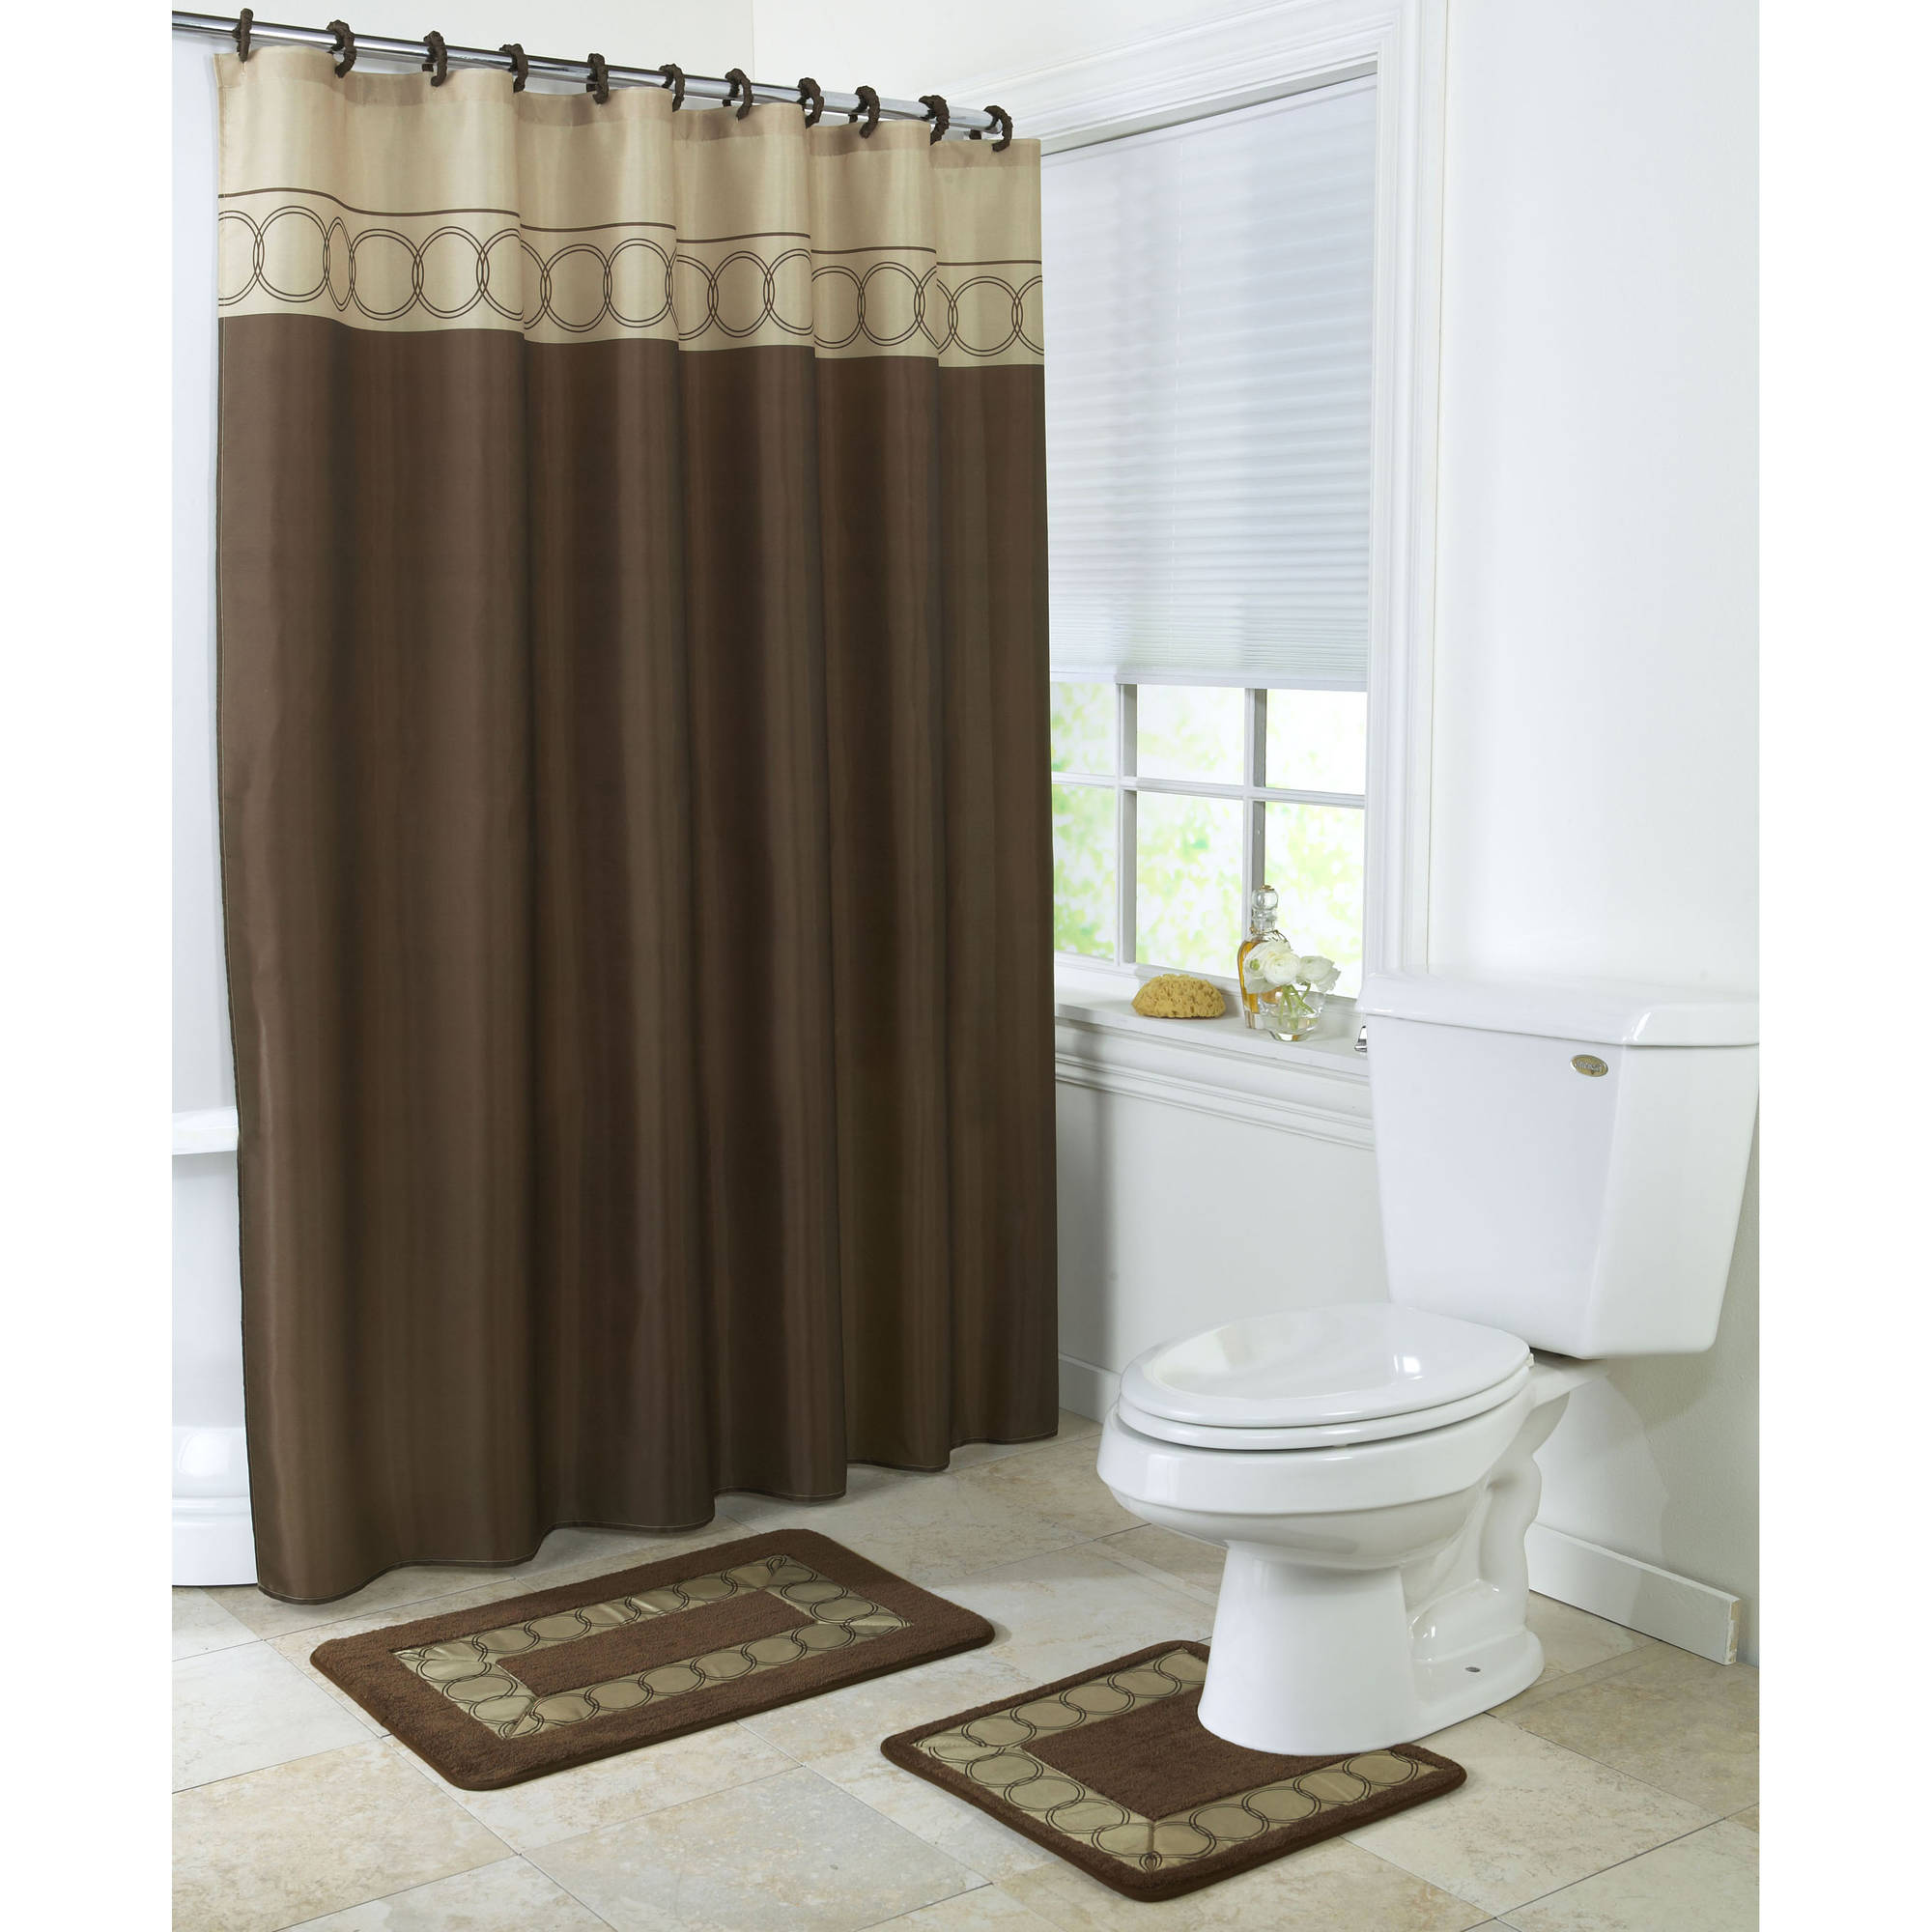 4 piece bathroom rug set/ 3 piece chocolate ring bath rugs with